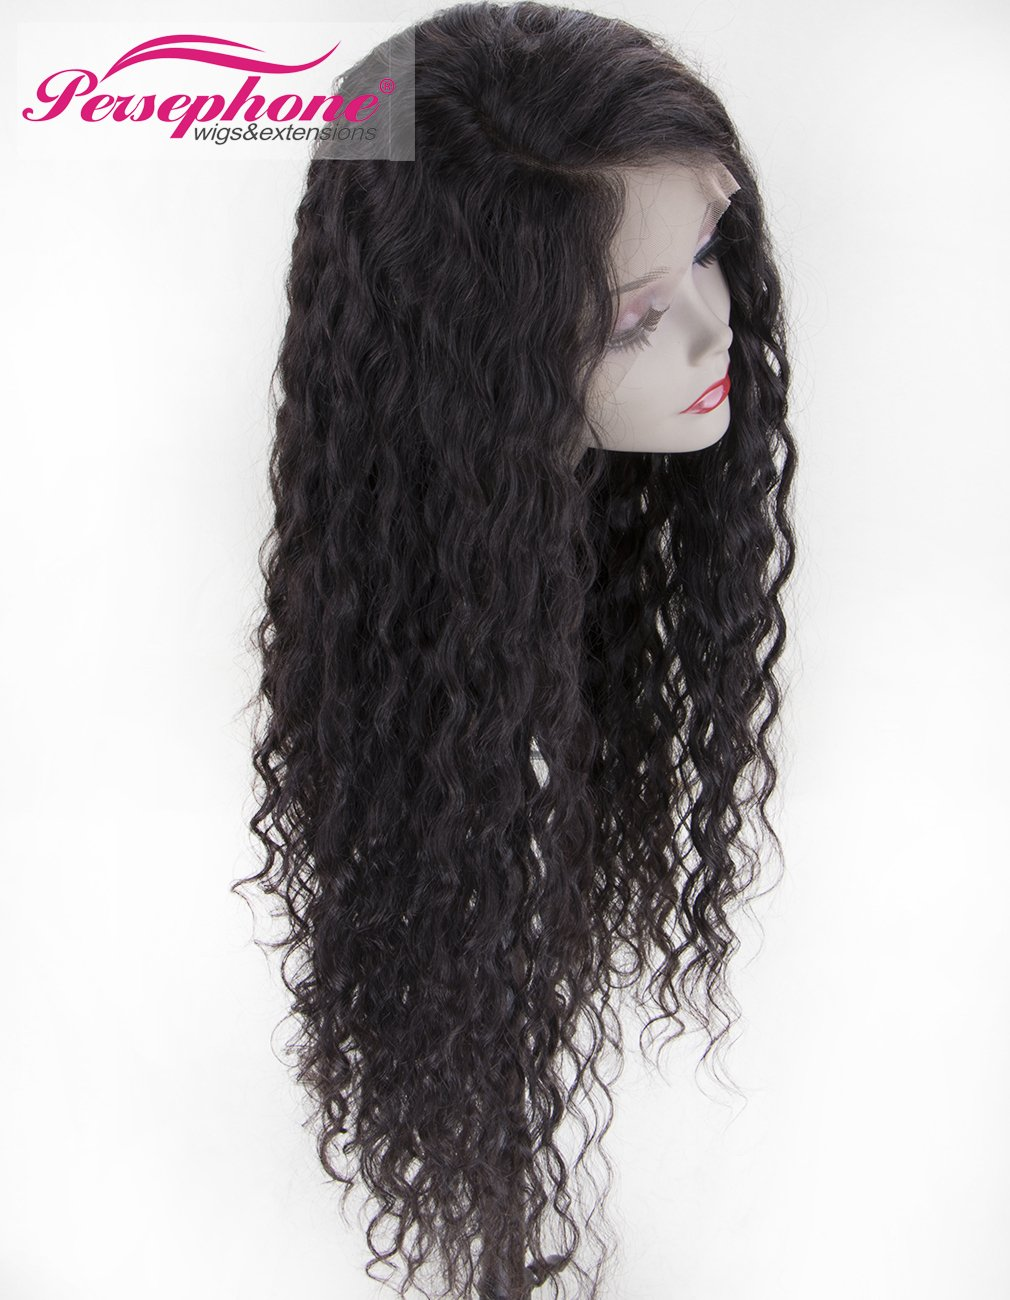 Persephone Real Looking Pre Plucked 360 Lace Wig with Baby Hair 150% Density Brazilian Curly Lace Front Human Hair Wigs for Black Women 14inches Natural Brown Color